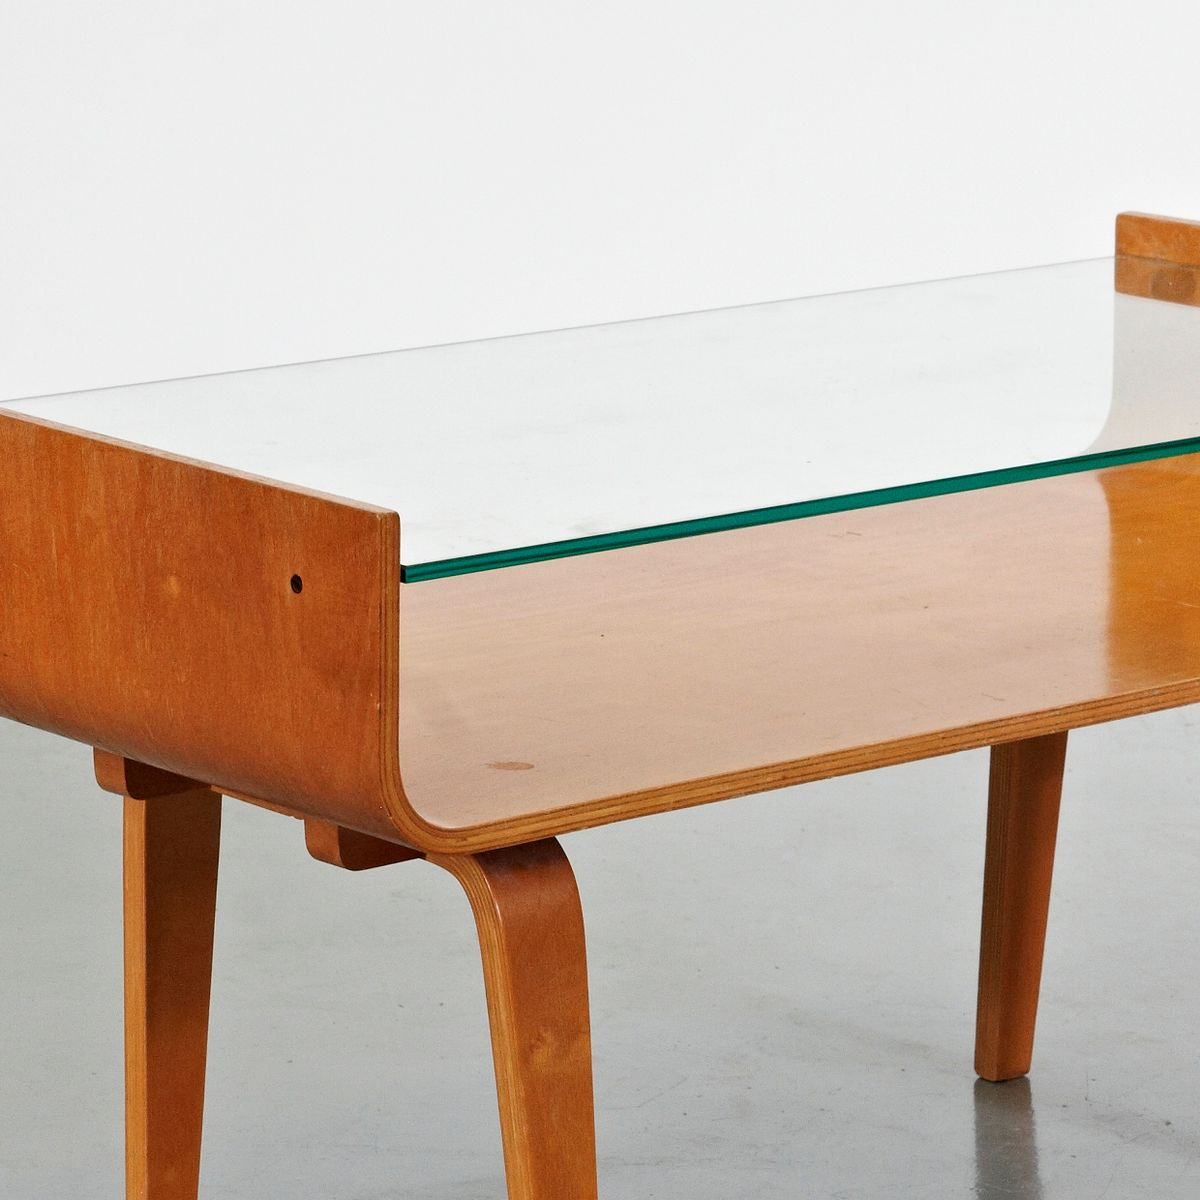 Coffee Table By Cor Alons For Den Boer Gouda, Circa 1950